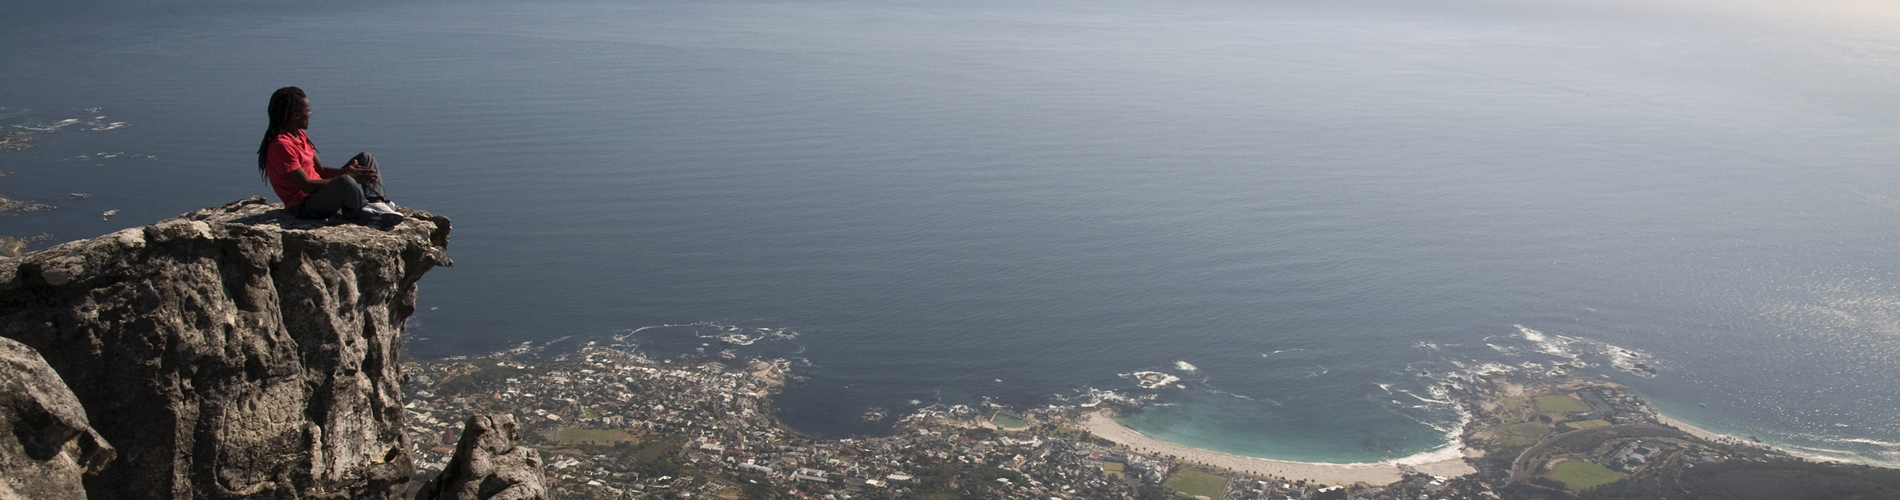 SAT view from table mountain website header resize